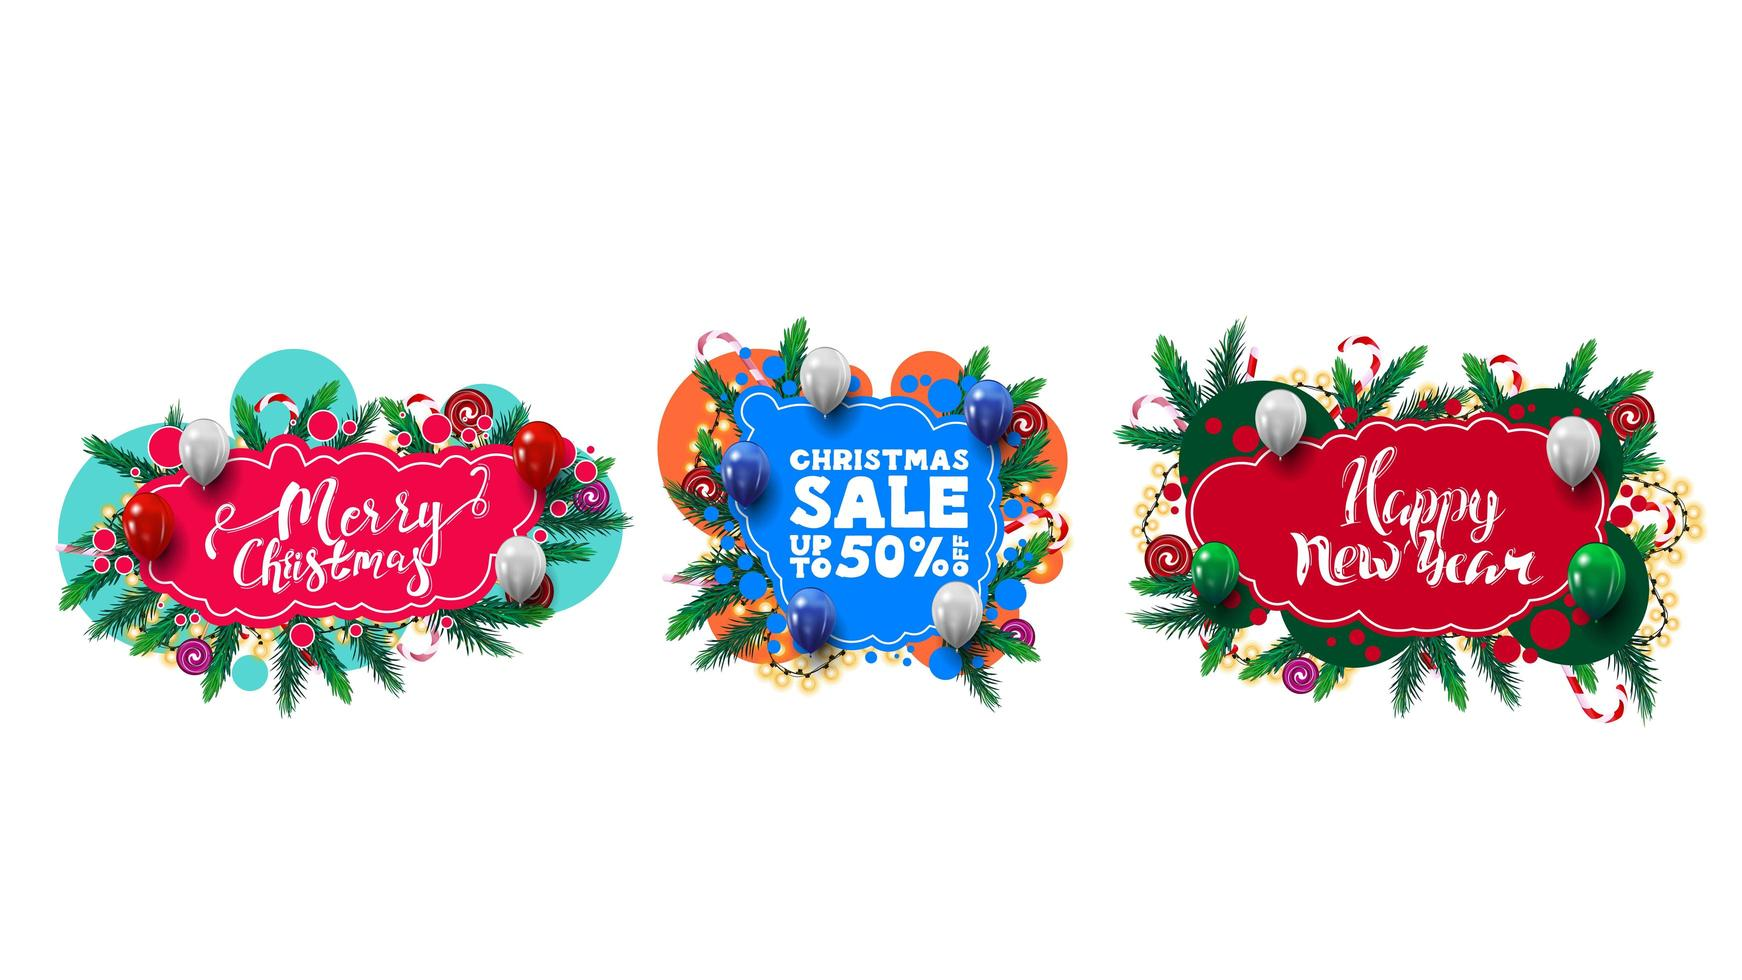 Set of Christmas greeting and discounts web elements in graffiti style with abstract shapes decorated with Christmas tree branches, candies and garlands vector